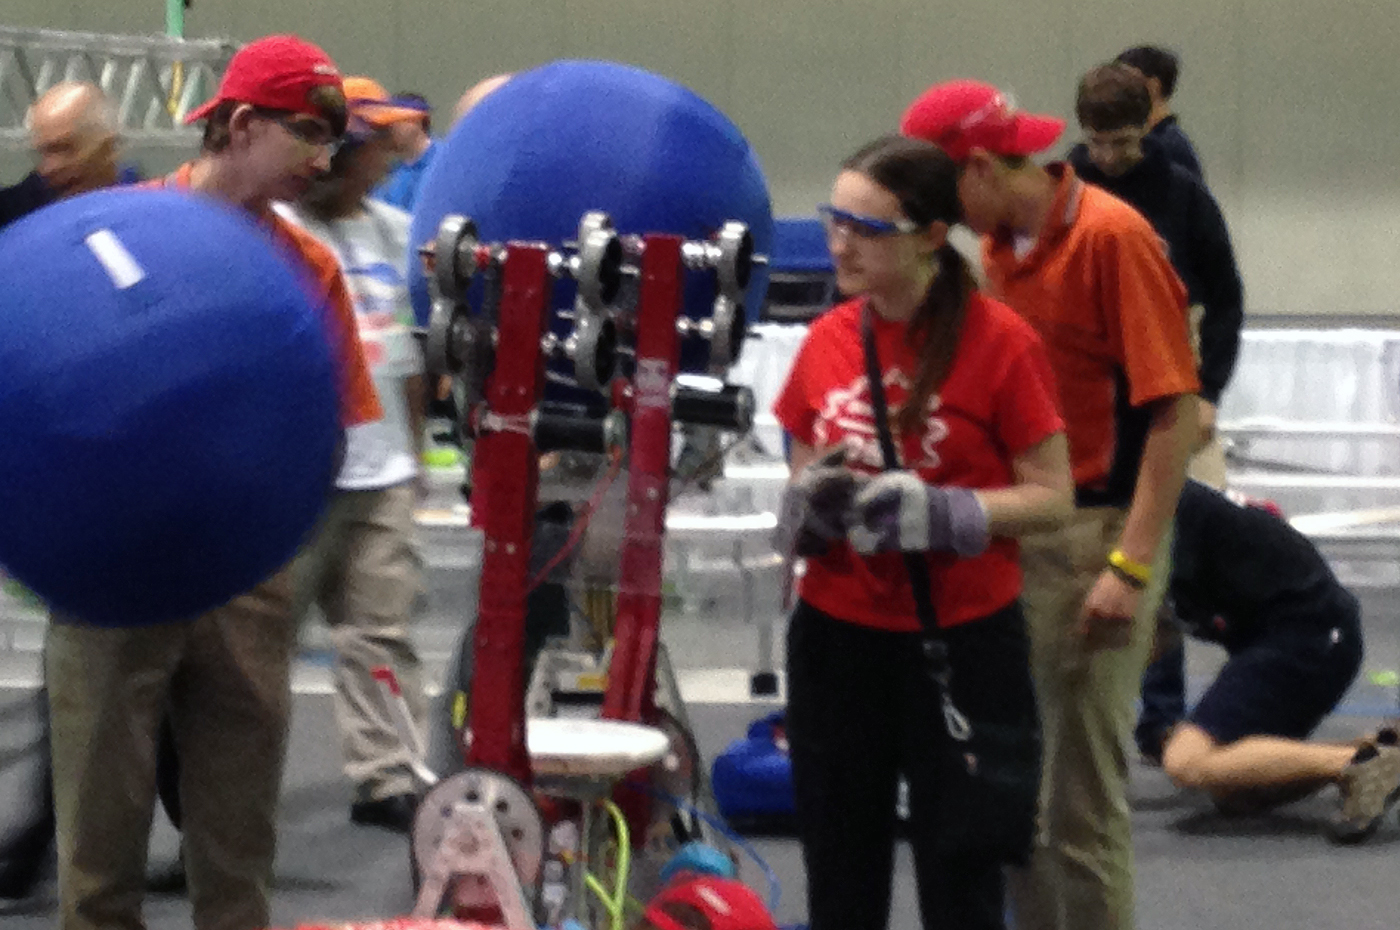 Teammates making last-minute adjustments to their robot.